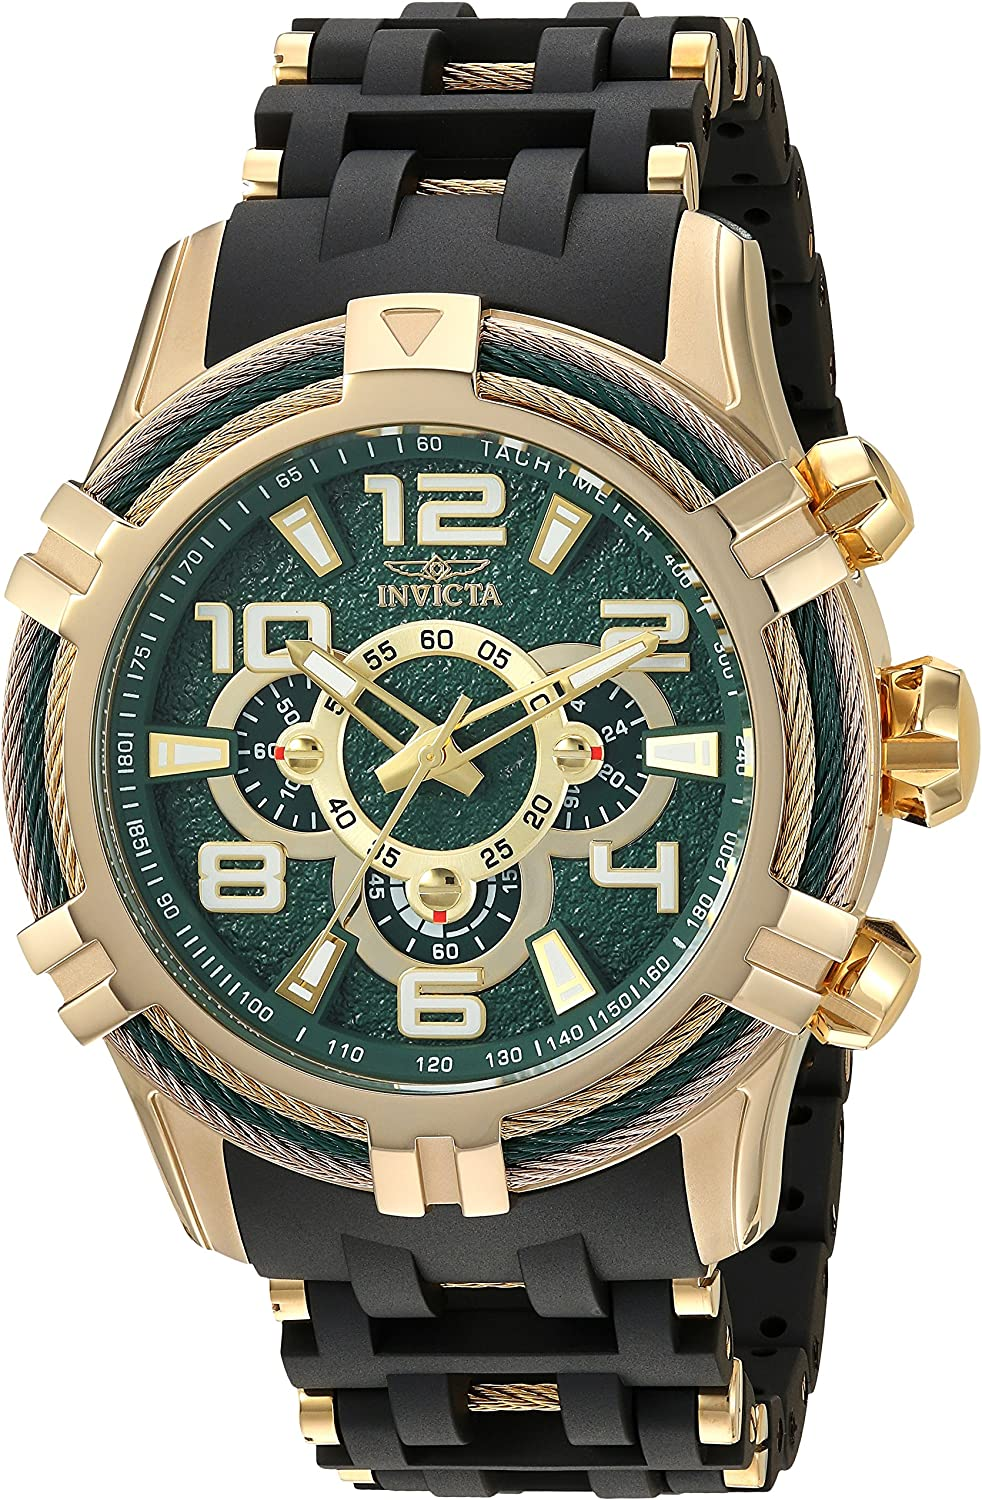 Invicta Men s Bolt Quartz Watch with Stainless-Steel Strap, Black, 25.75 Model 25557